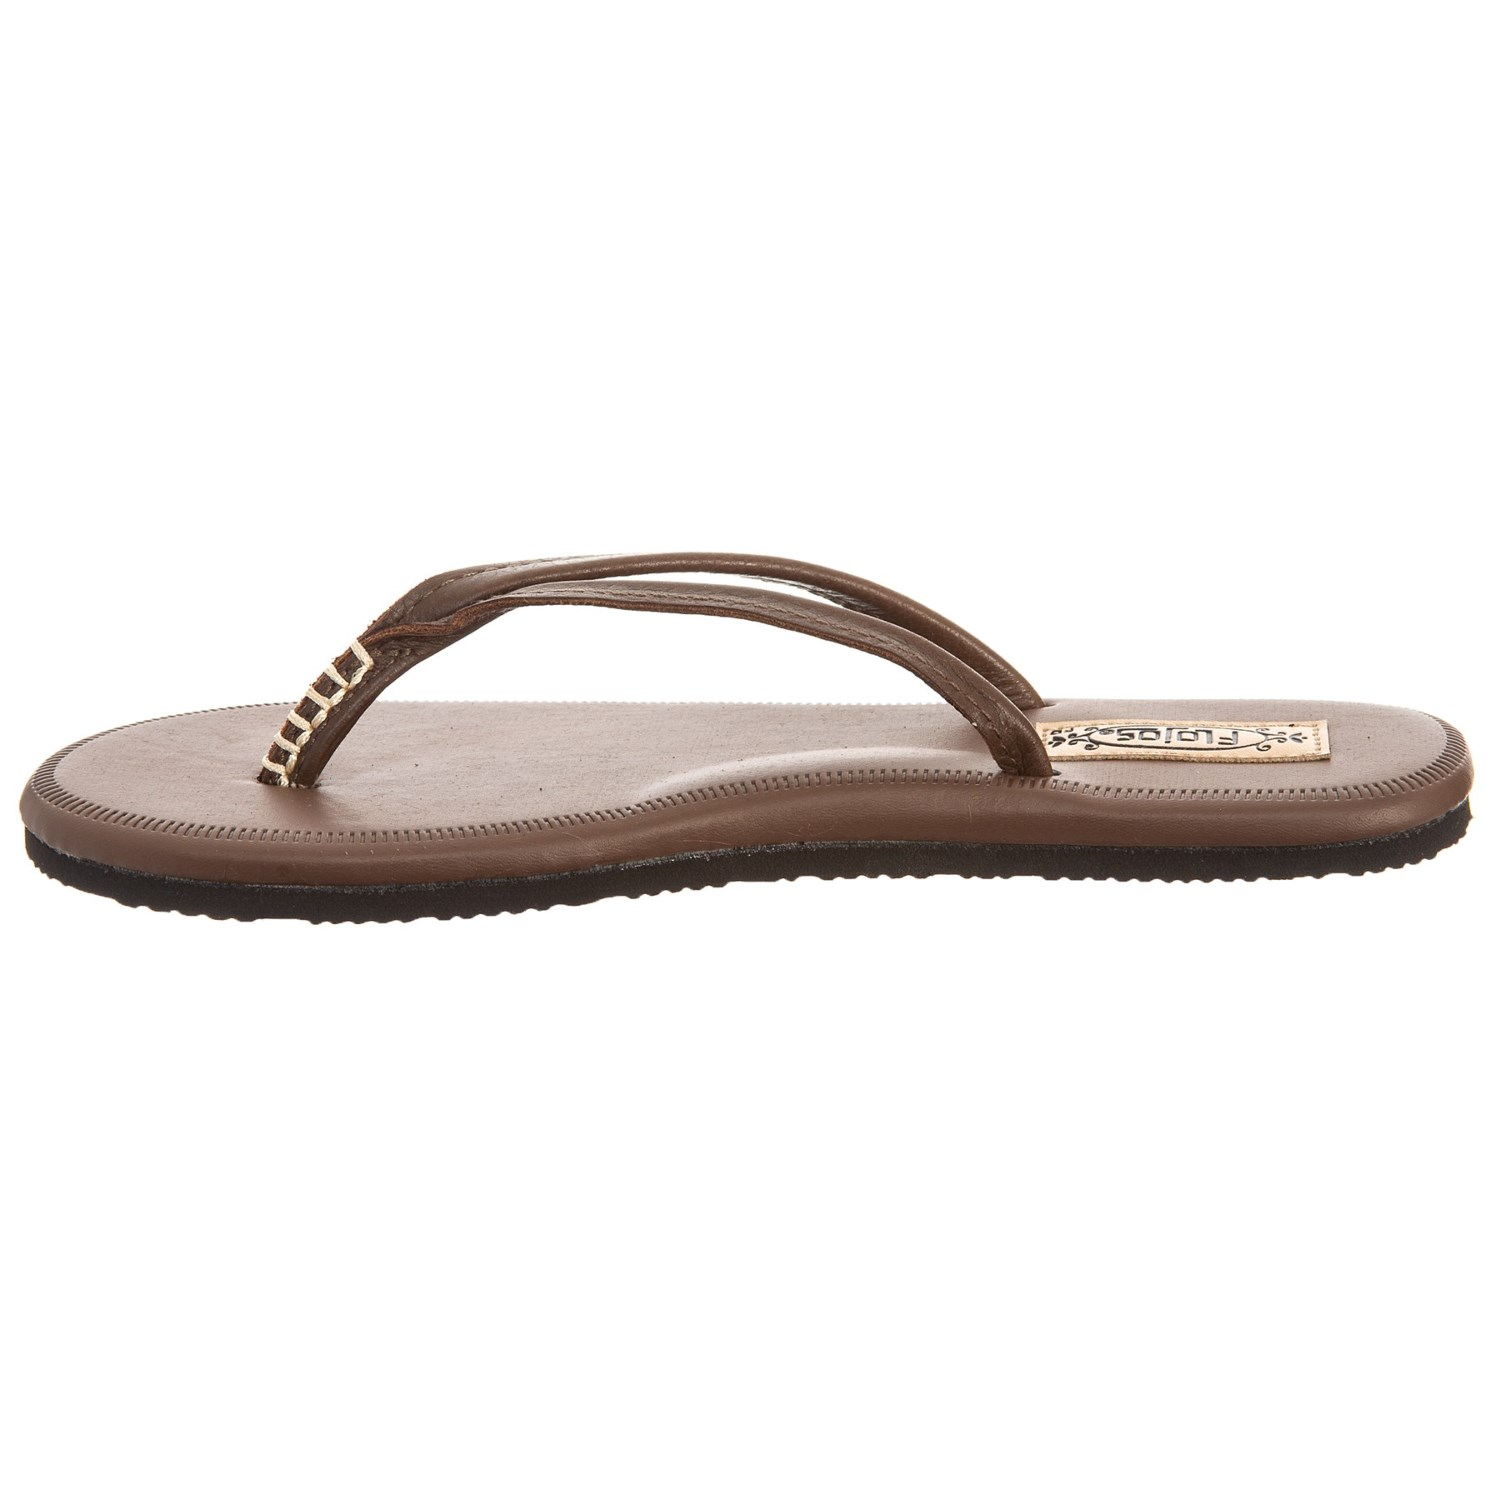 12db807951da FLOJOS Florence Flip-Flops (For Women) - Save 25%